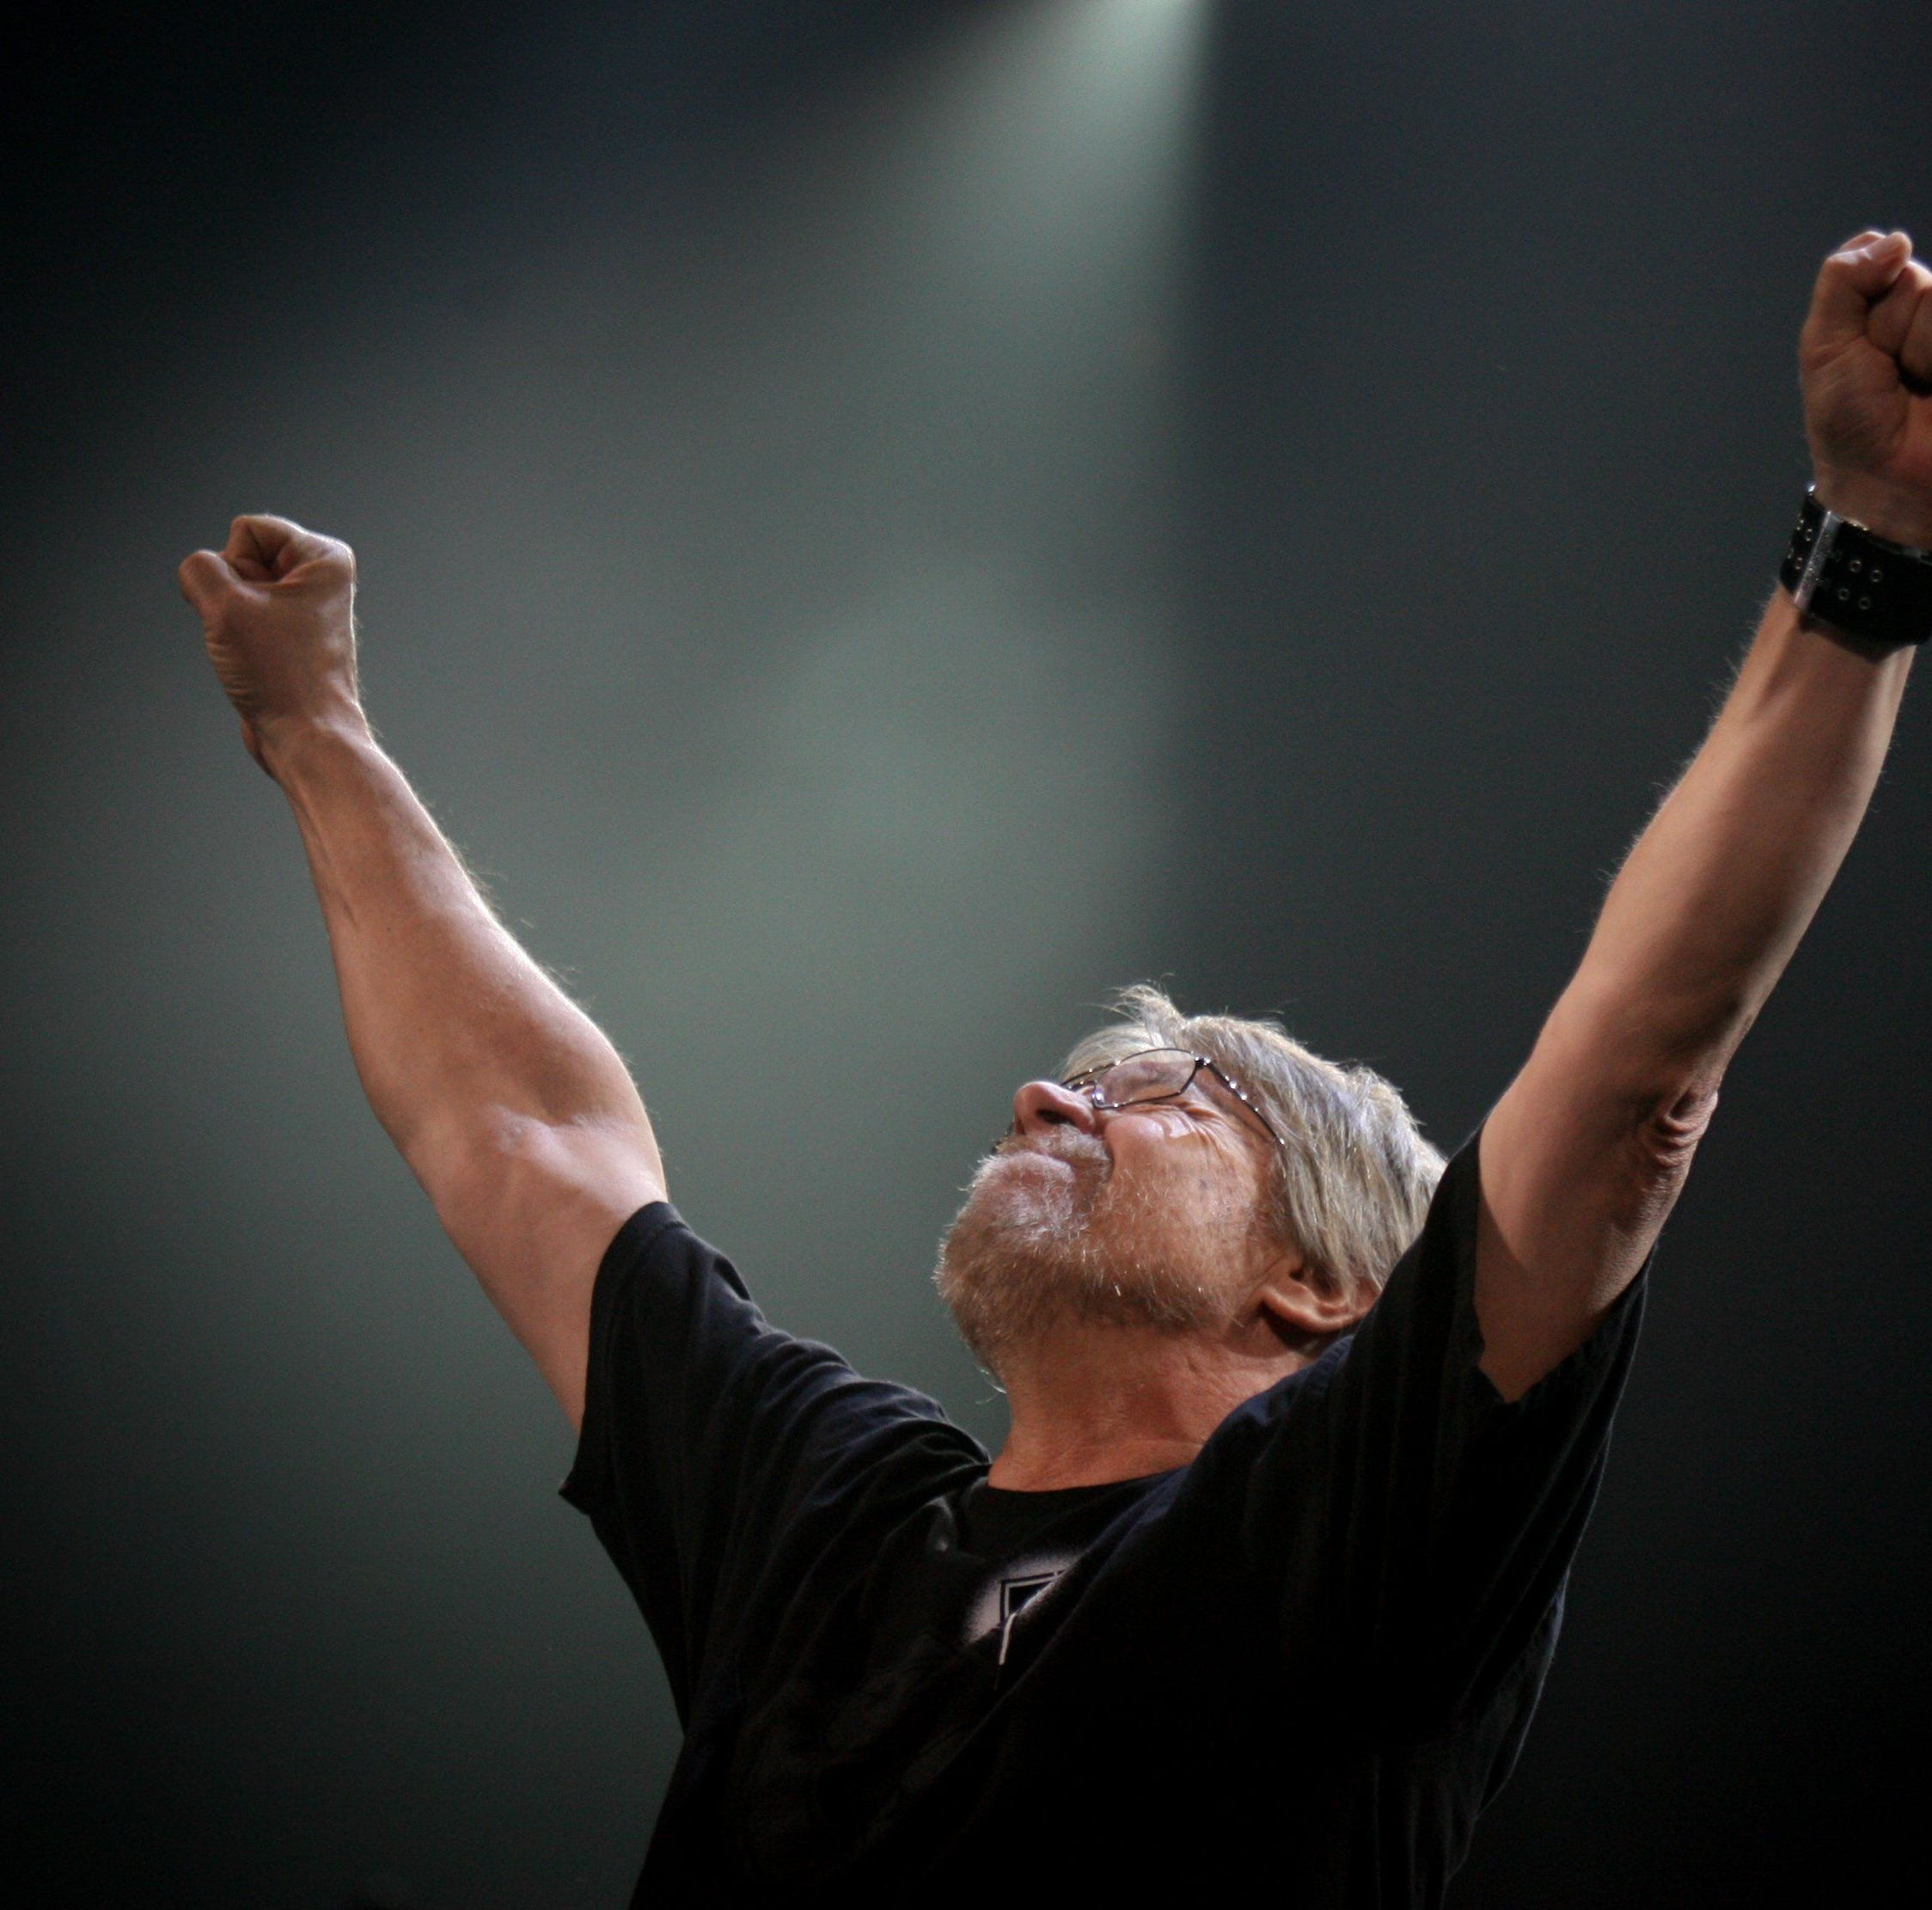 Bob Seger announces final tour; retiring from the road after 56 years